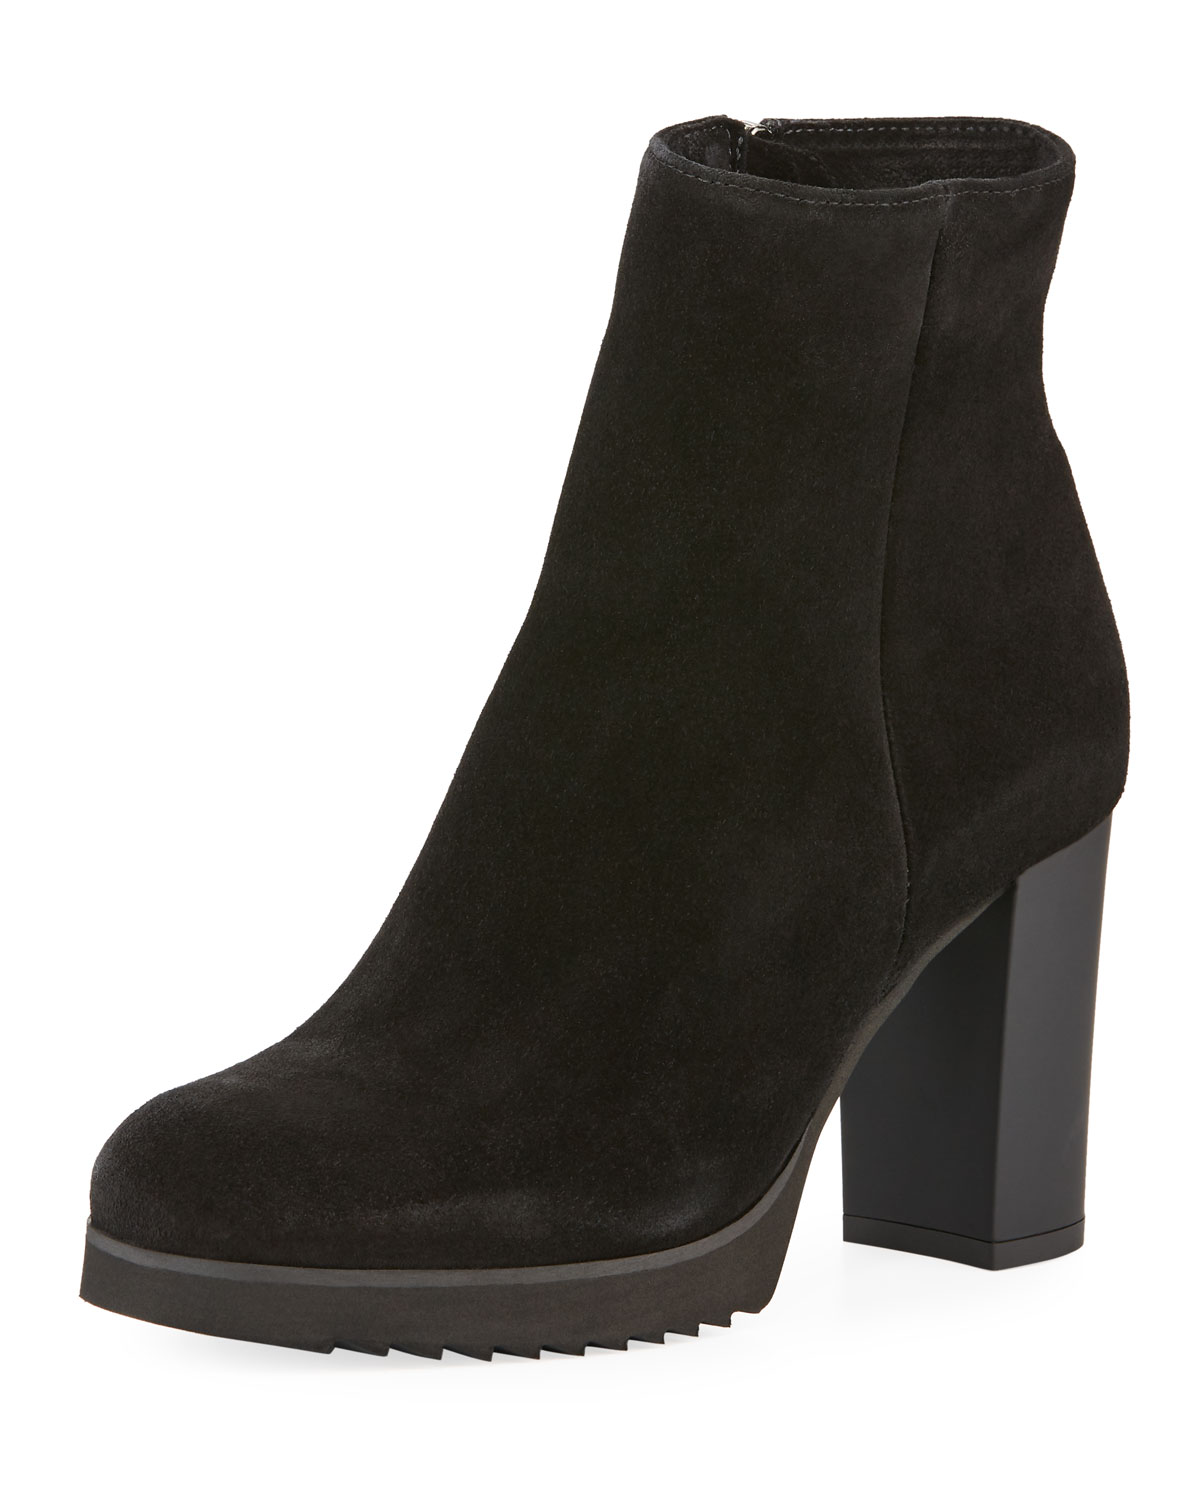 Myranda Suede Zip Booties